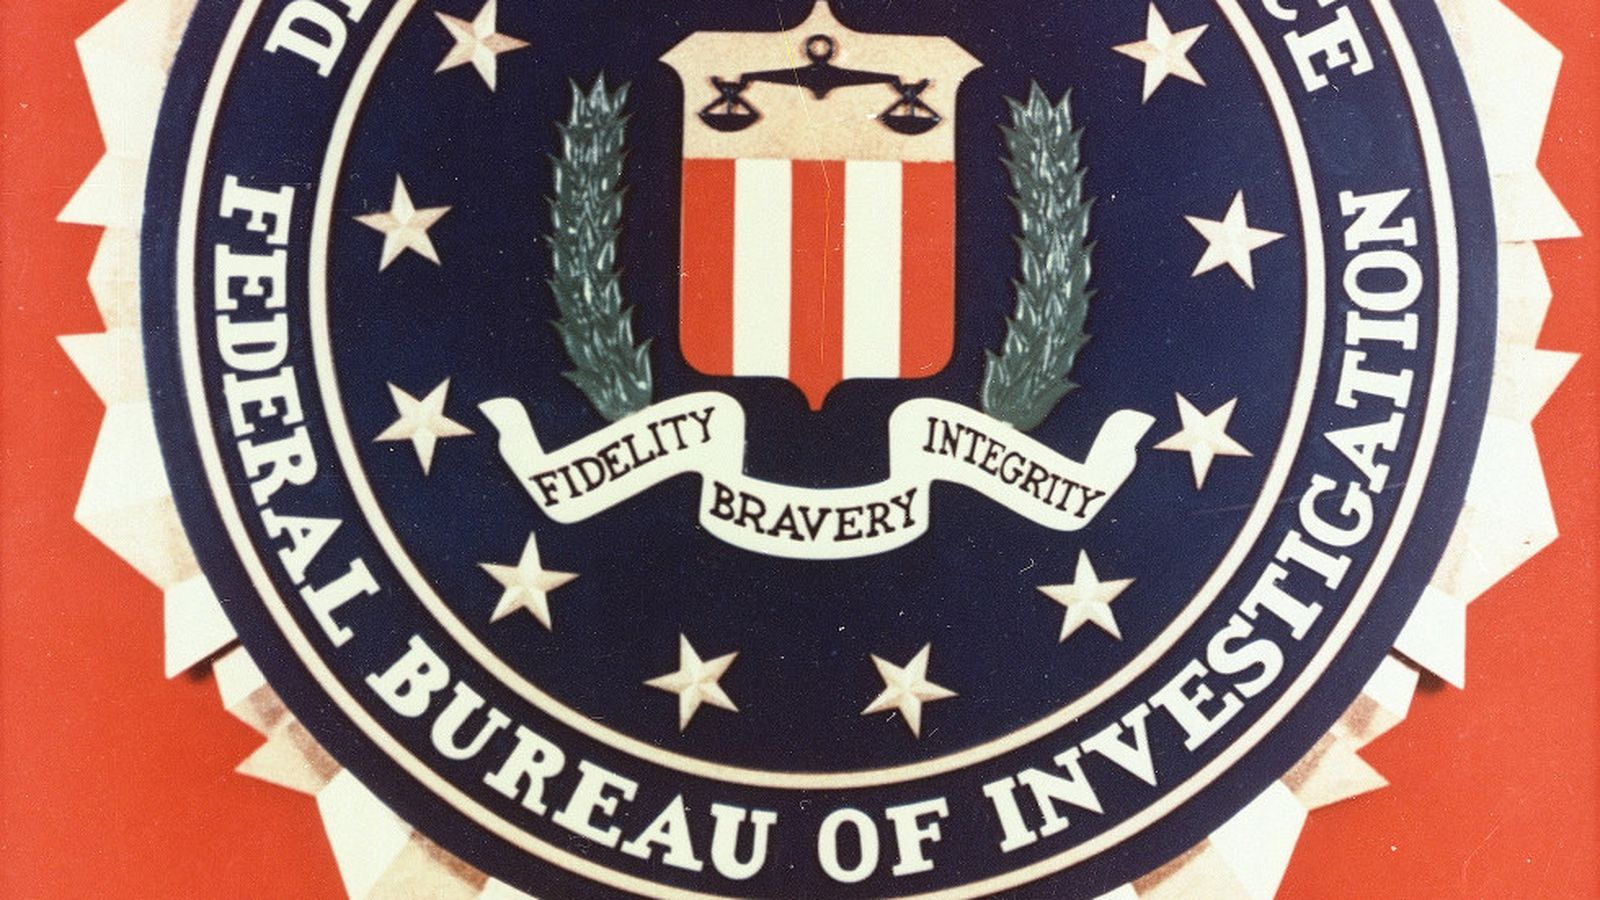 Behind the FBI agent's